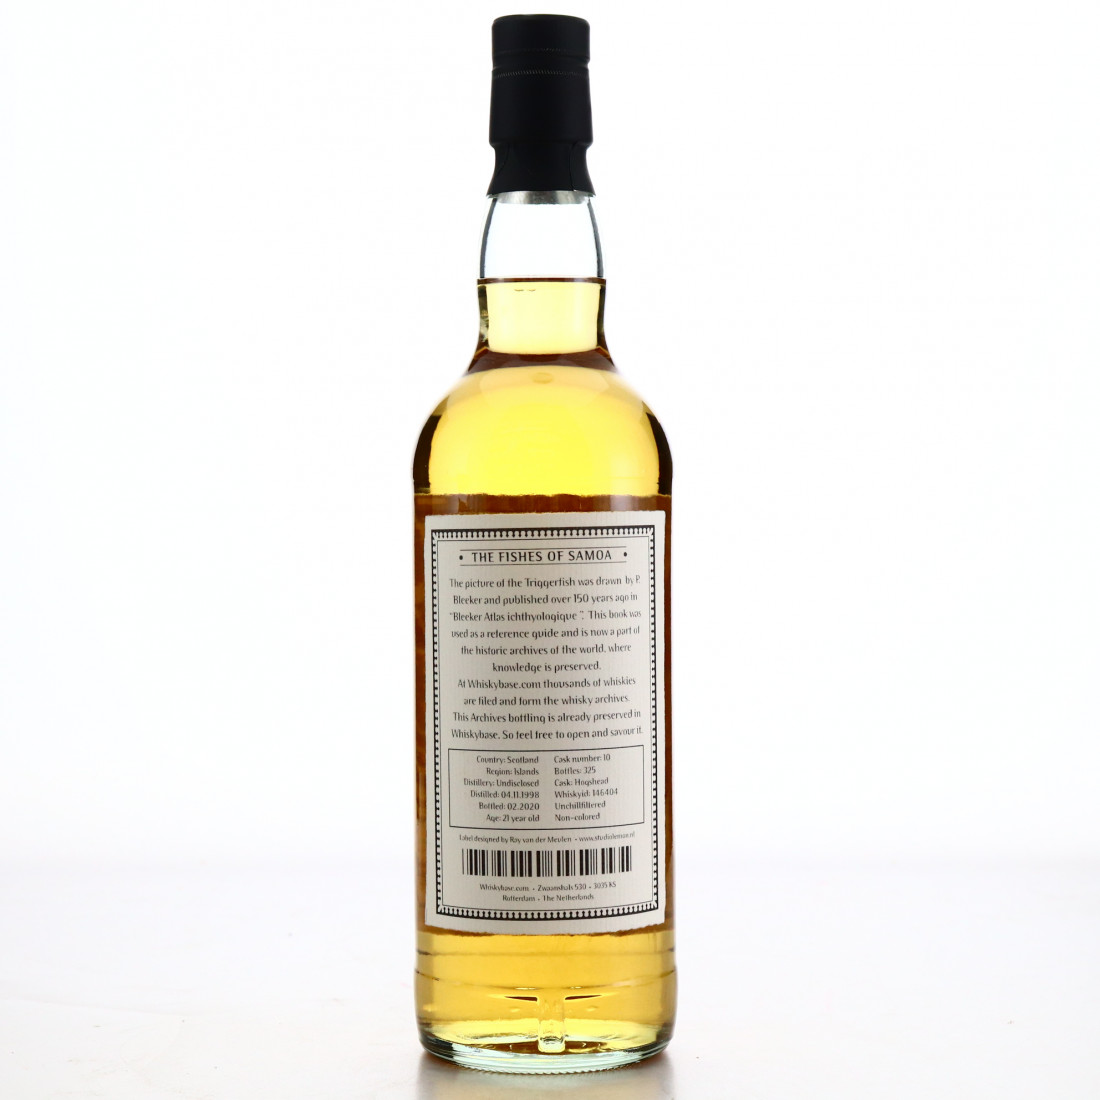 An Orkney Distillery 1998 Archives 21 Year Old